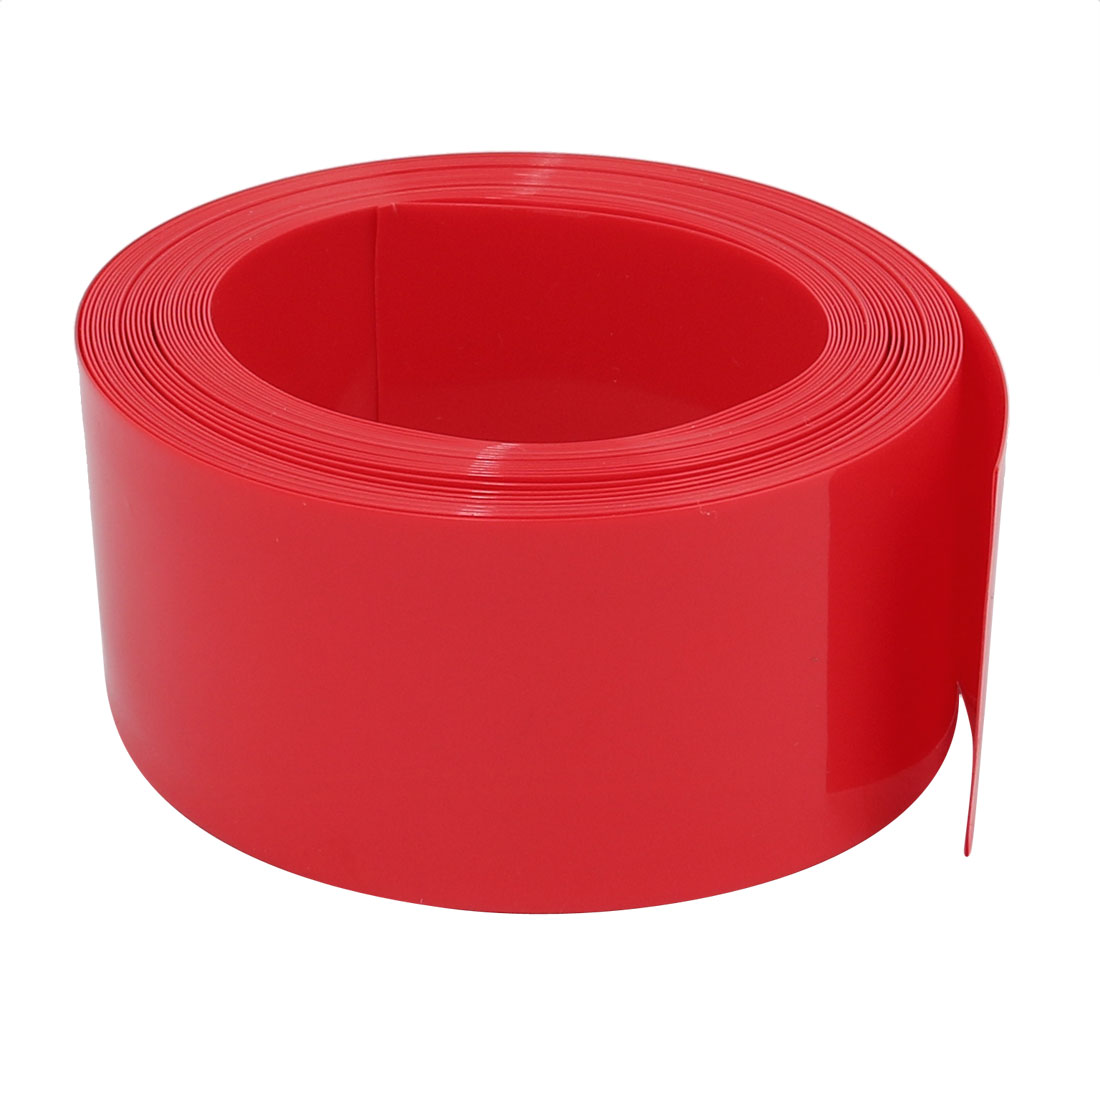 31mm Flat Width 5M Long PVC Heat Shrinkable Tube Red for Capacitive Battery Pack